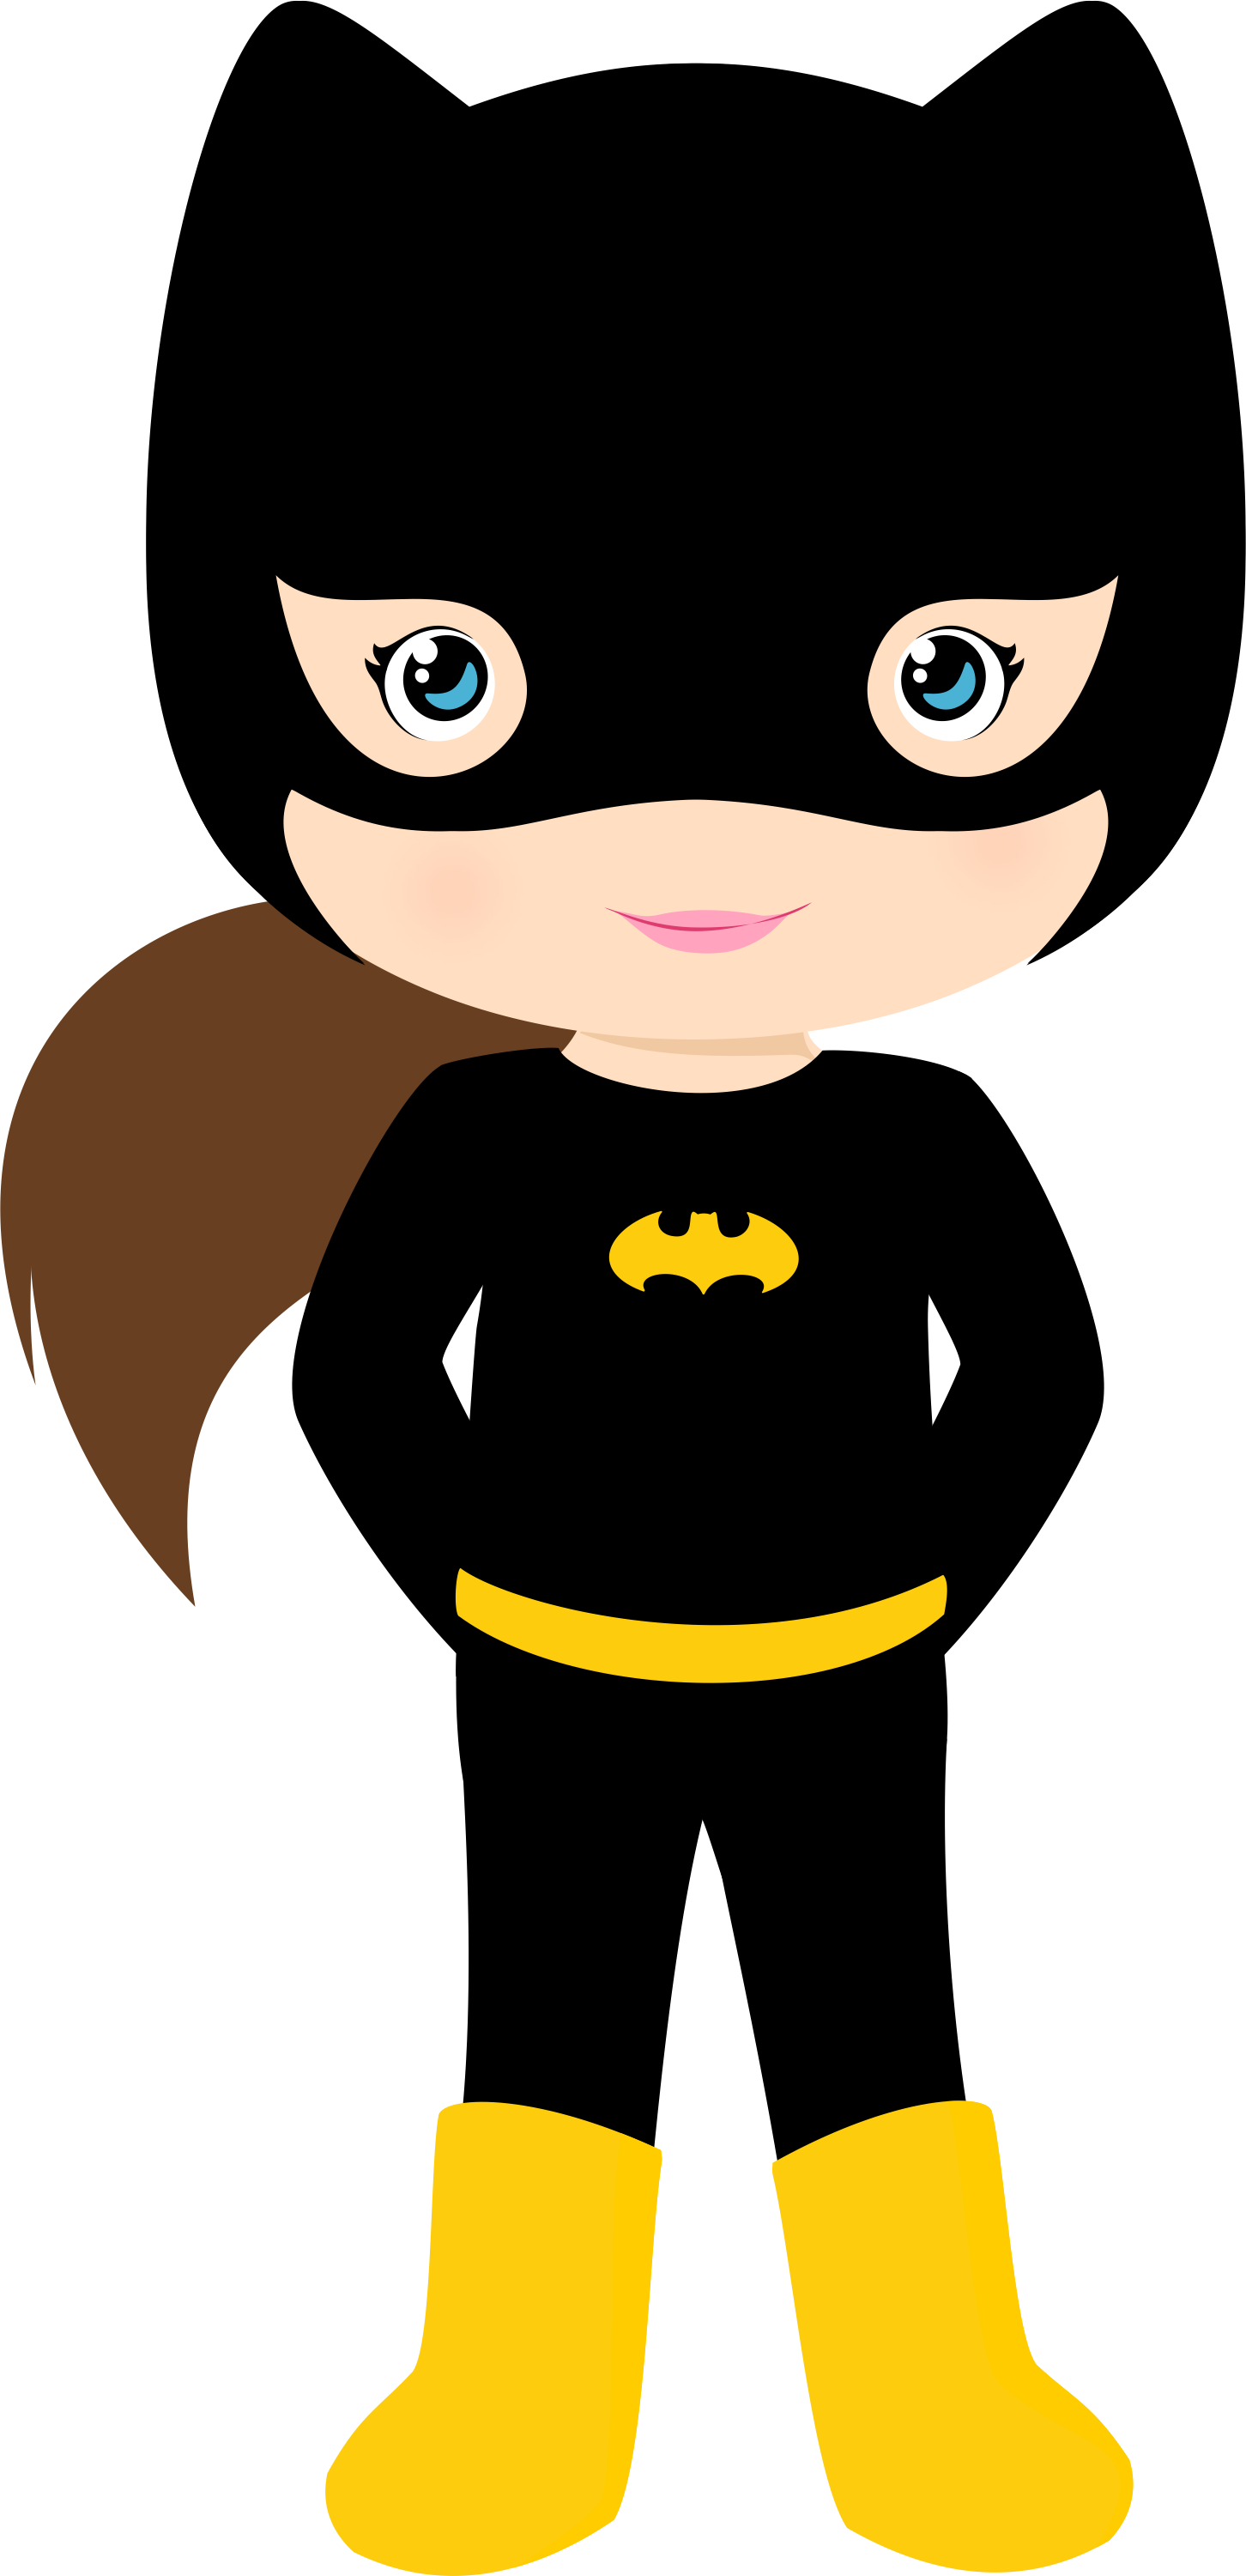 black and white Brave clipart superboy. Batgirl party ideas by